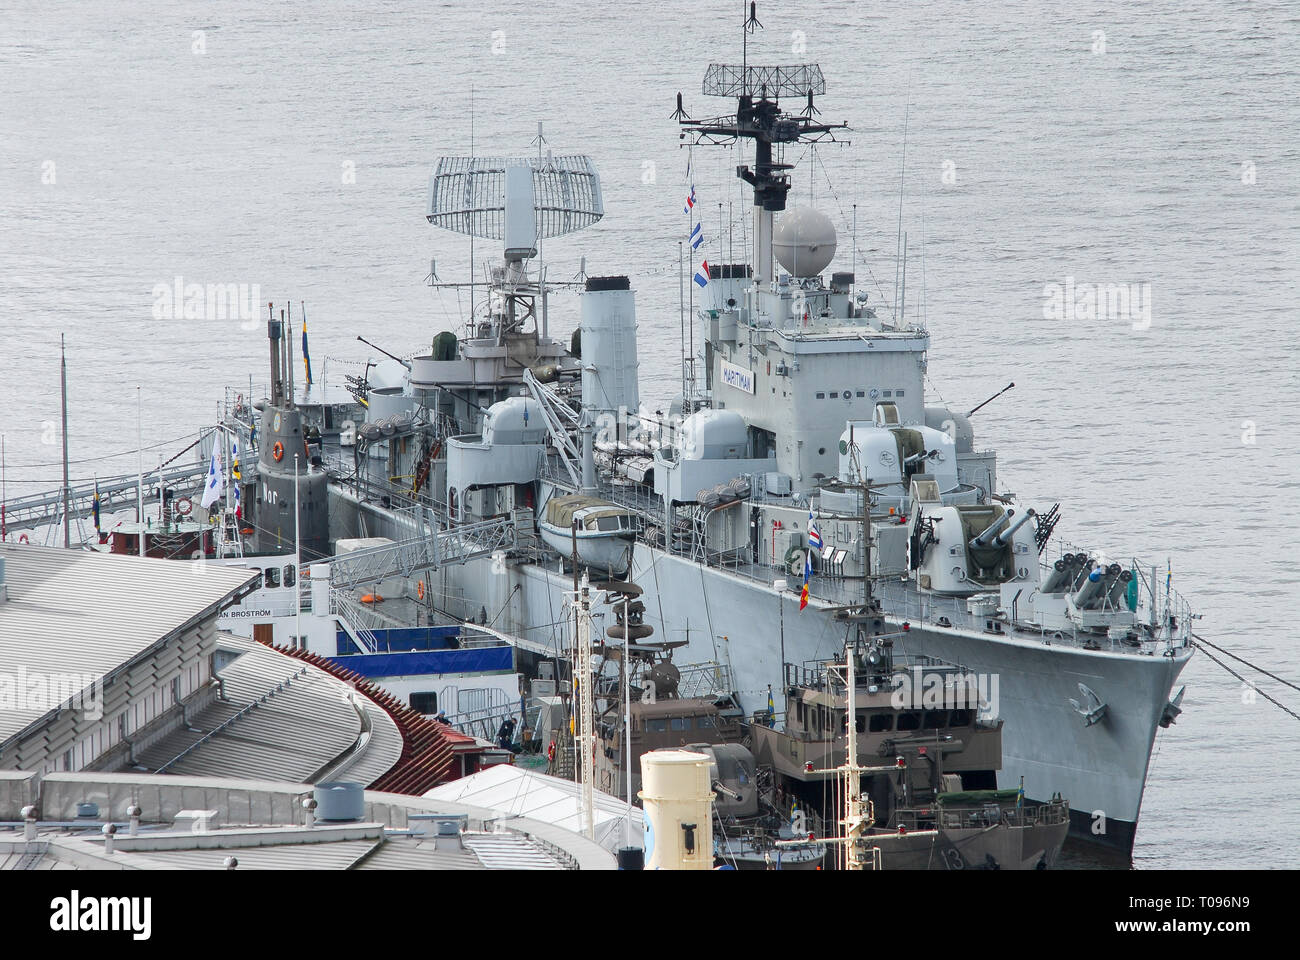 Hswms Halland High Resolution Stock Photography And Images Alamy